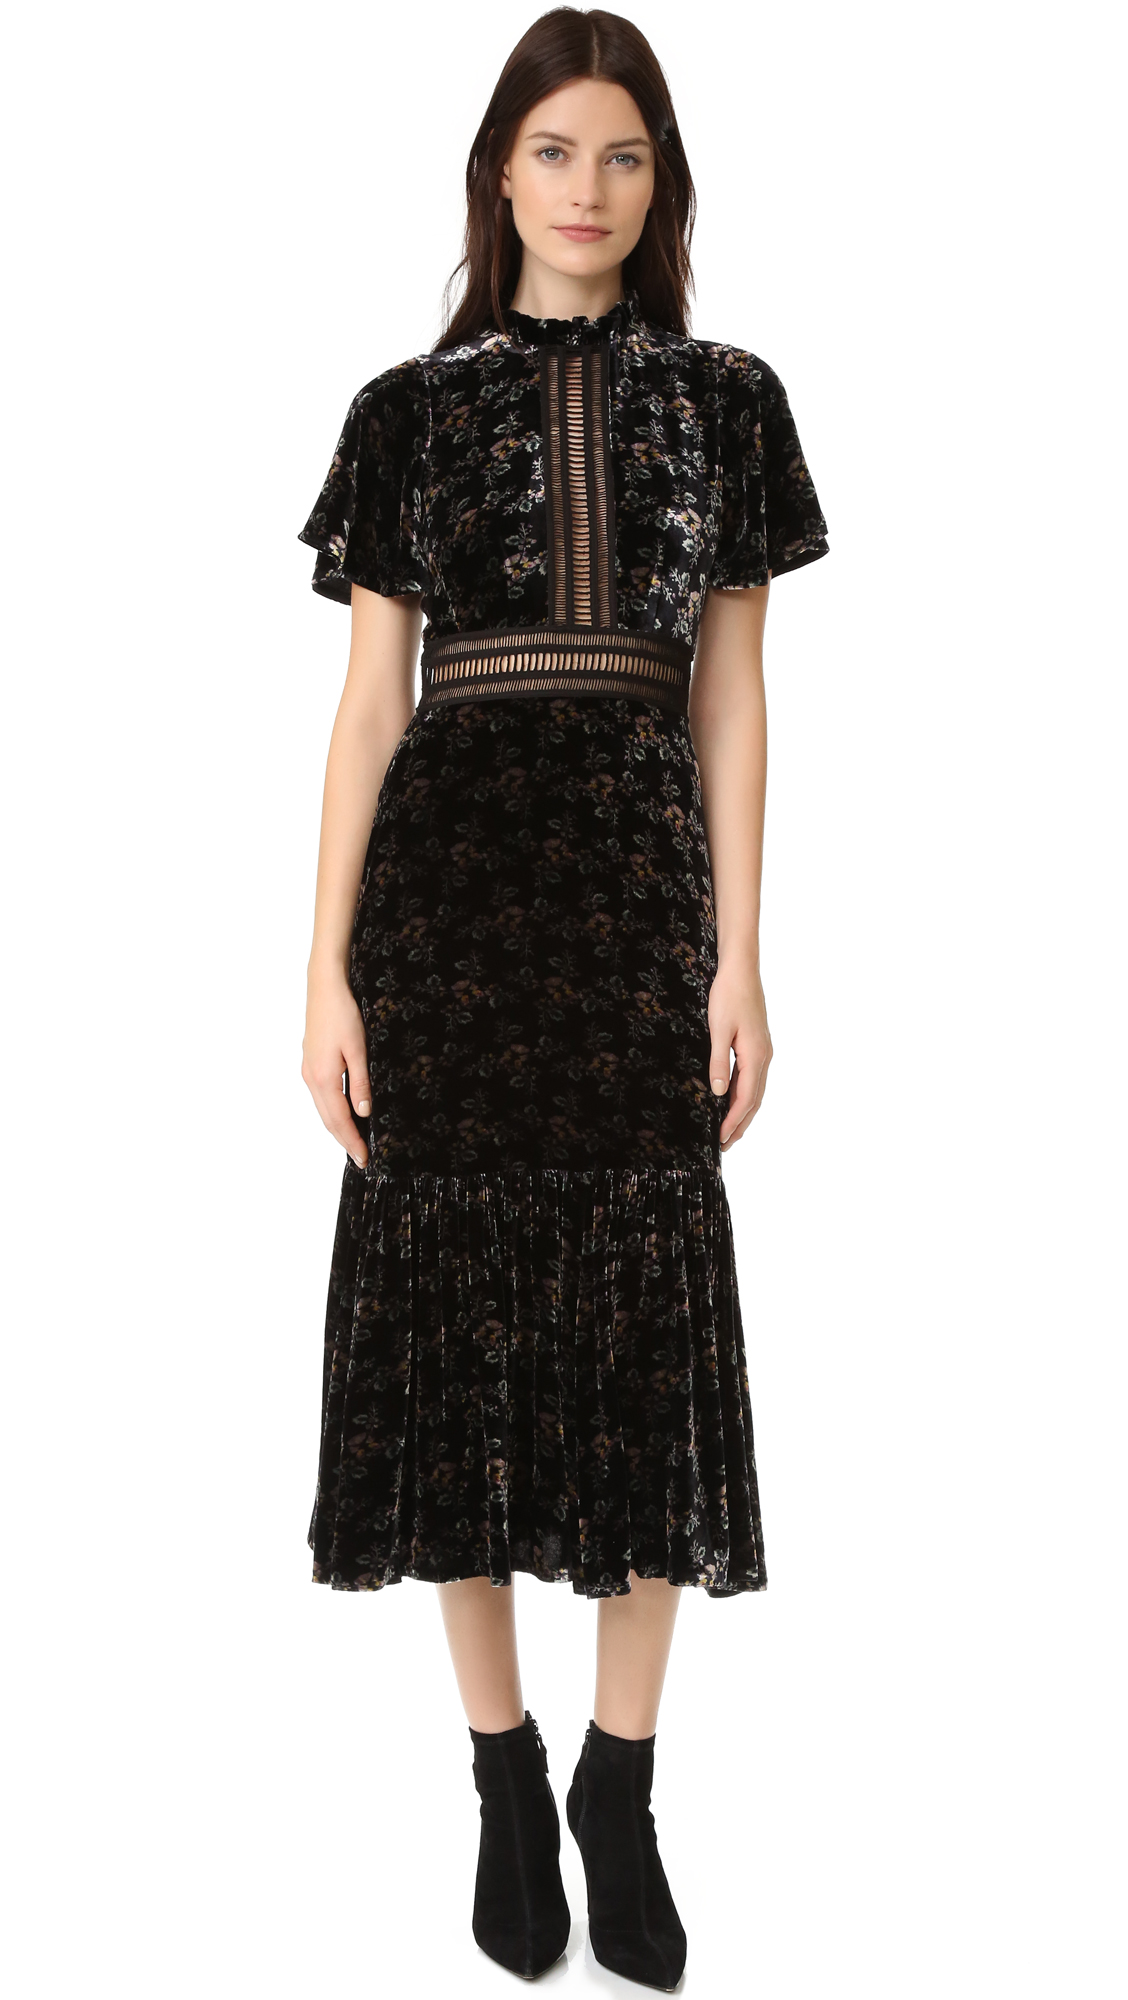 Floral velvet gives this Rebecca Taylor dress a feminine, luxe aesthetic. Sheer, embroidered panels reveal peeks of skin at the bodice and waist. Flounced hem. Short sleeves. Hidden back zip. Lined. Fabric: Velvet. Shell: 64% viscose/36% silk.